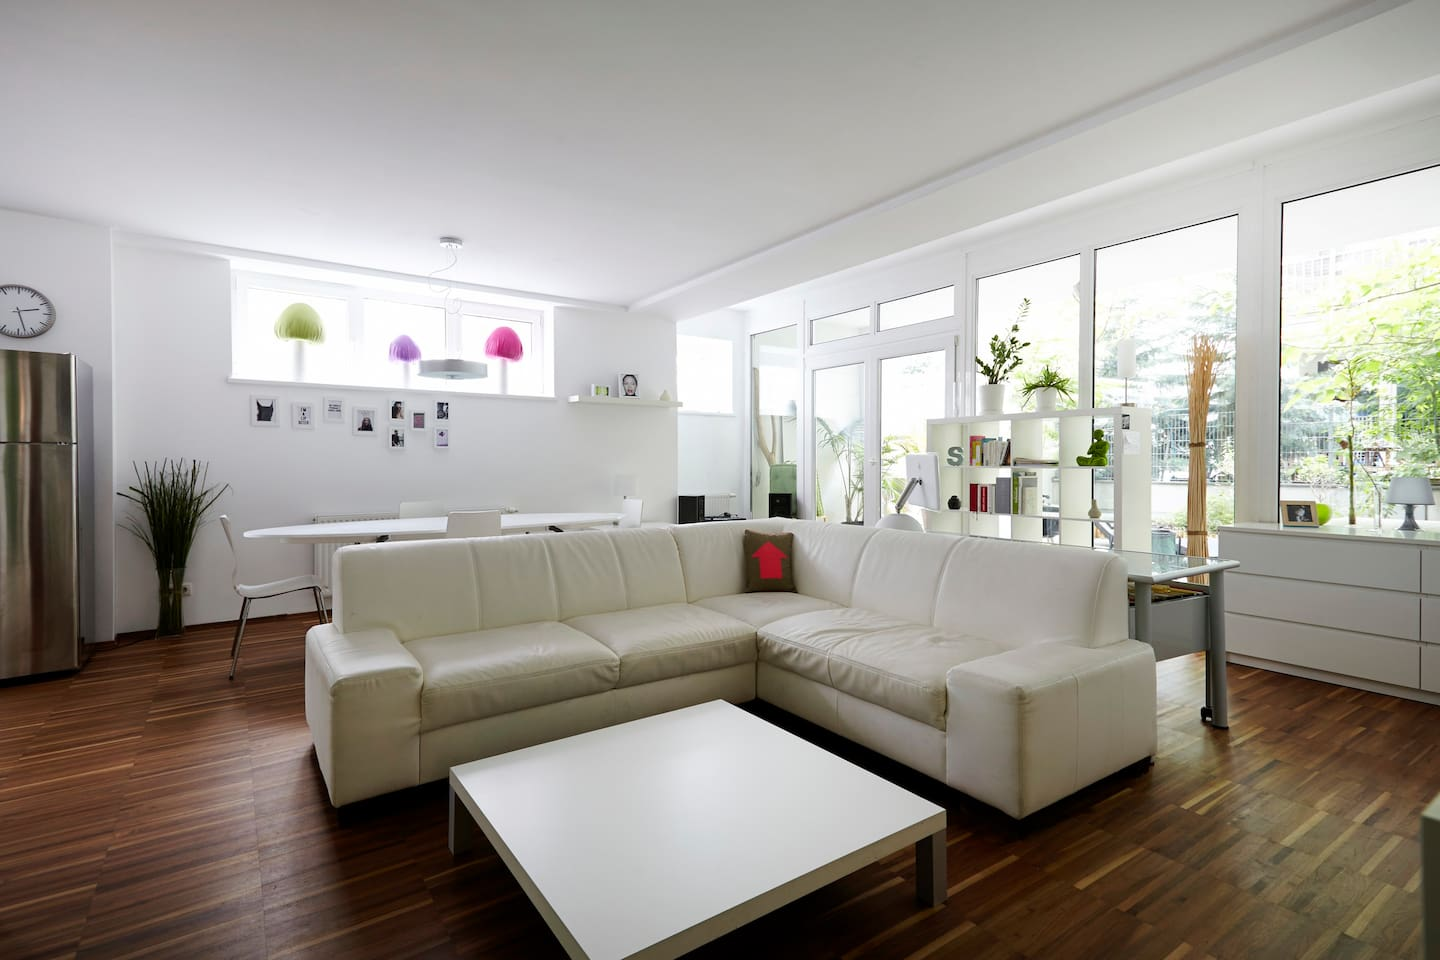 Loft-like living room, very spacious, view to the private garden